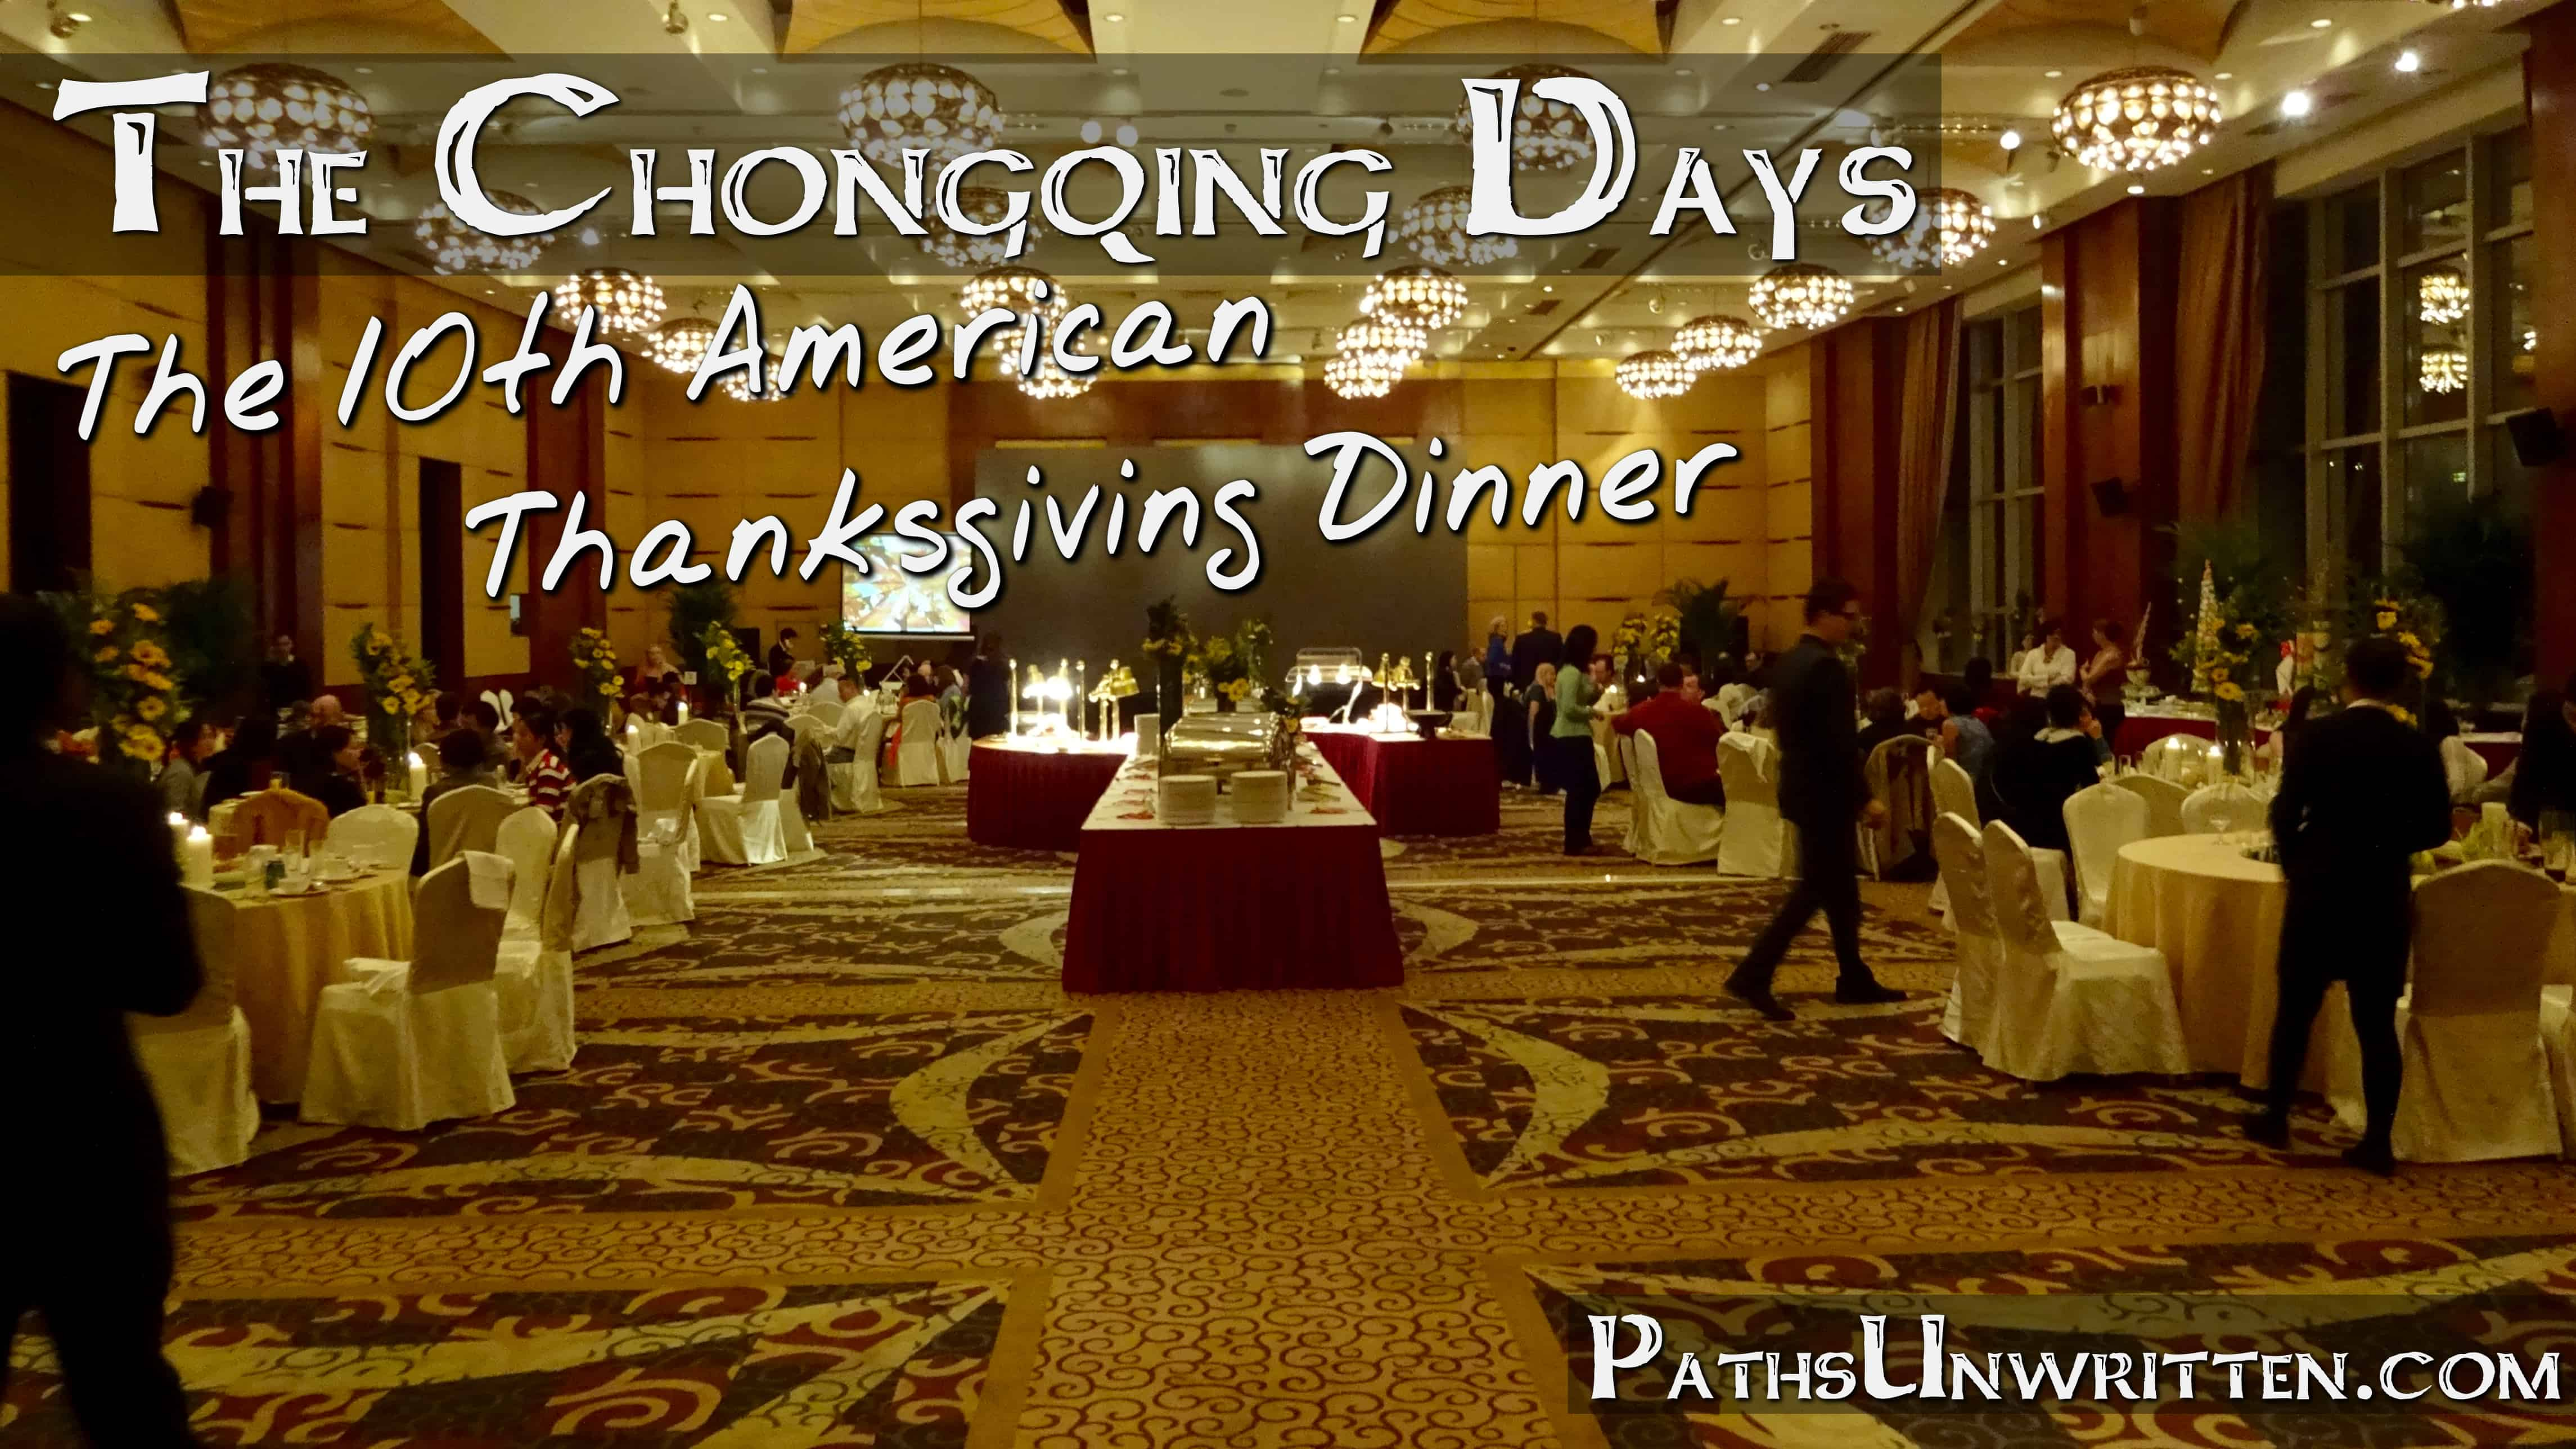 The Chongqing Days:  10th Annual Thanksgiving Dinner